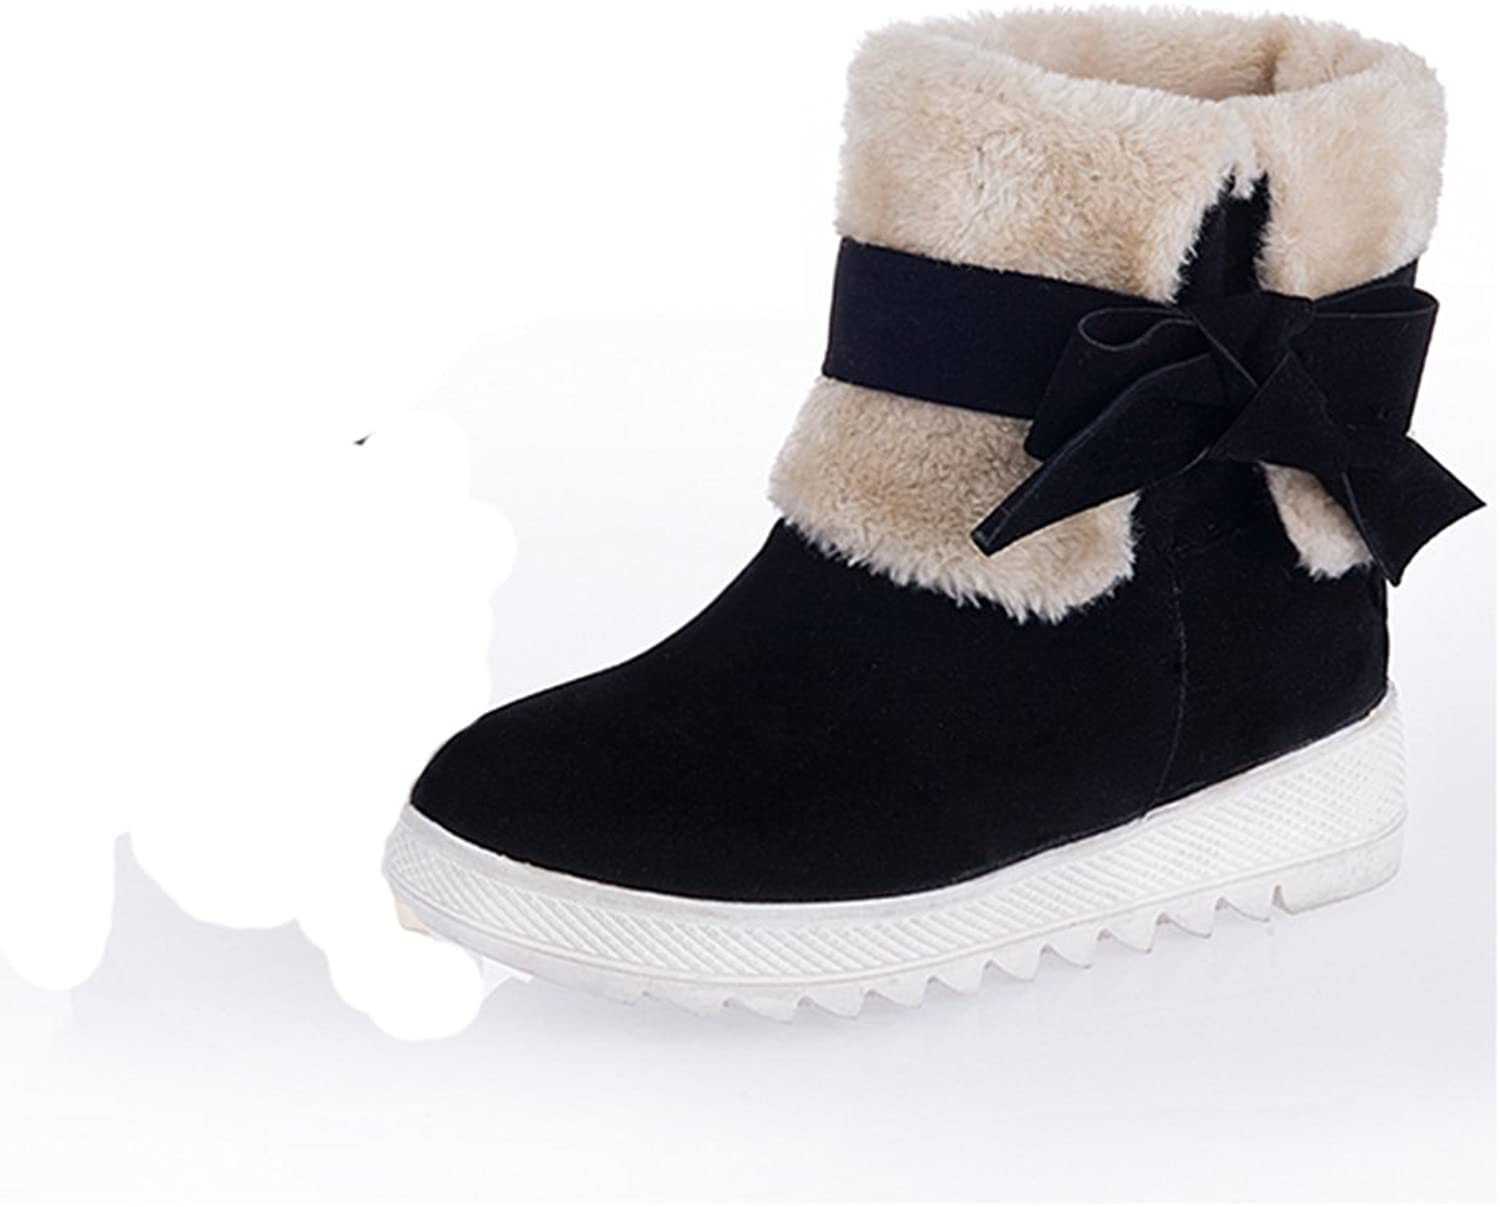 RHFDVGDS Cute student short tube in autumn and winter snow boots increased with bowknot short boots